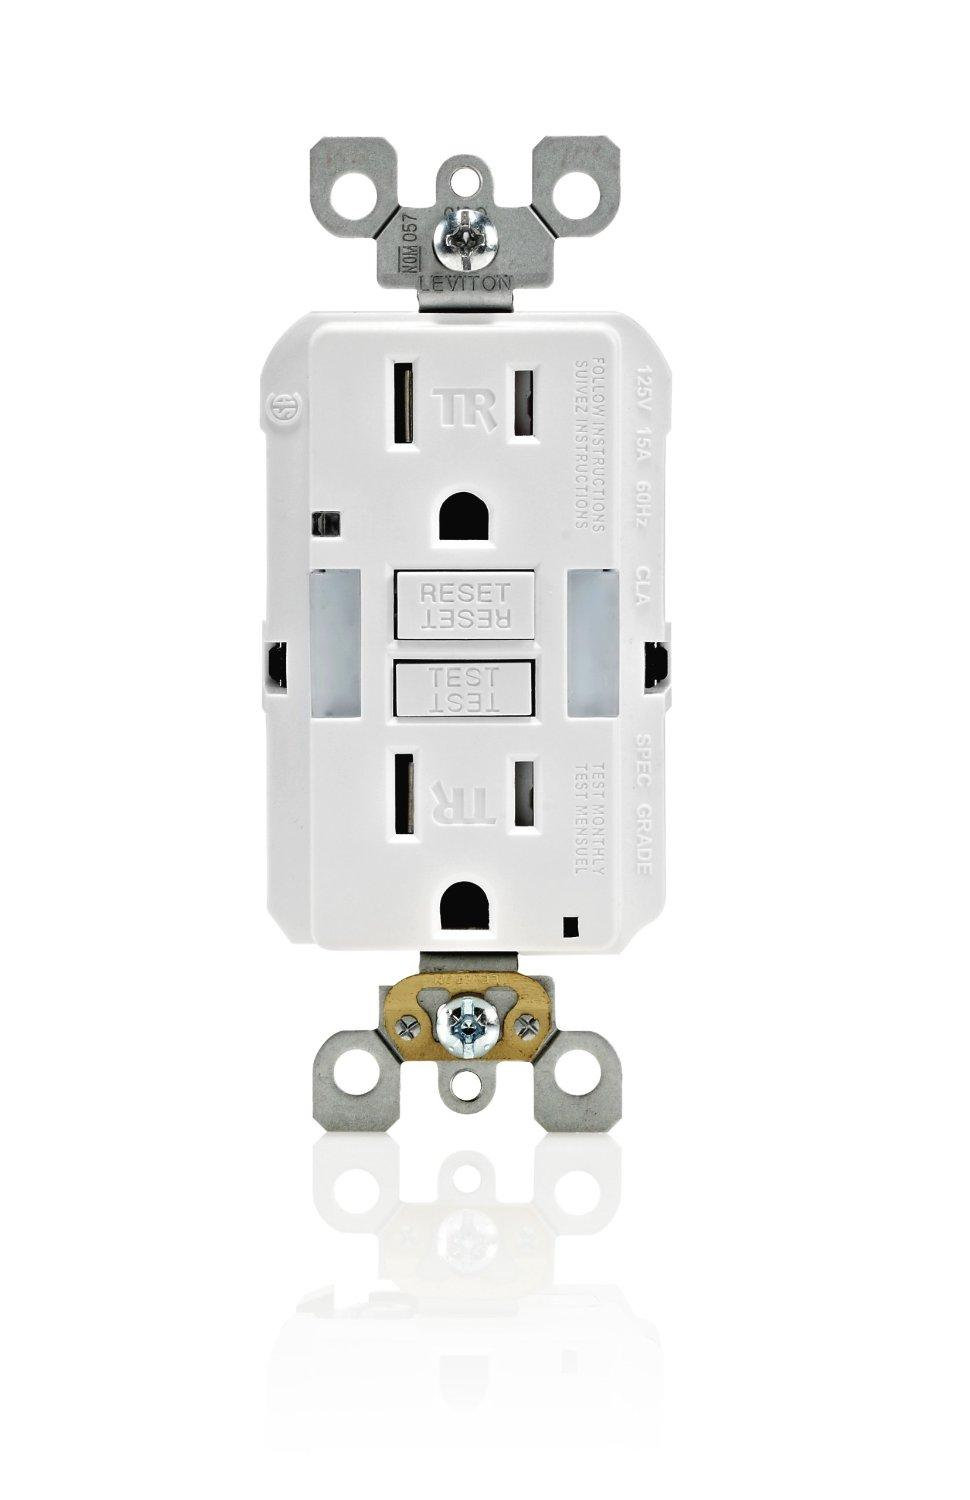 Leviton gfnl1 00w self test smartlockpro slim gfci tamper from the manufacturer sciox Choice Image